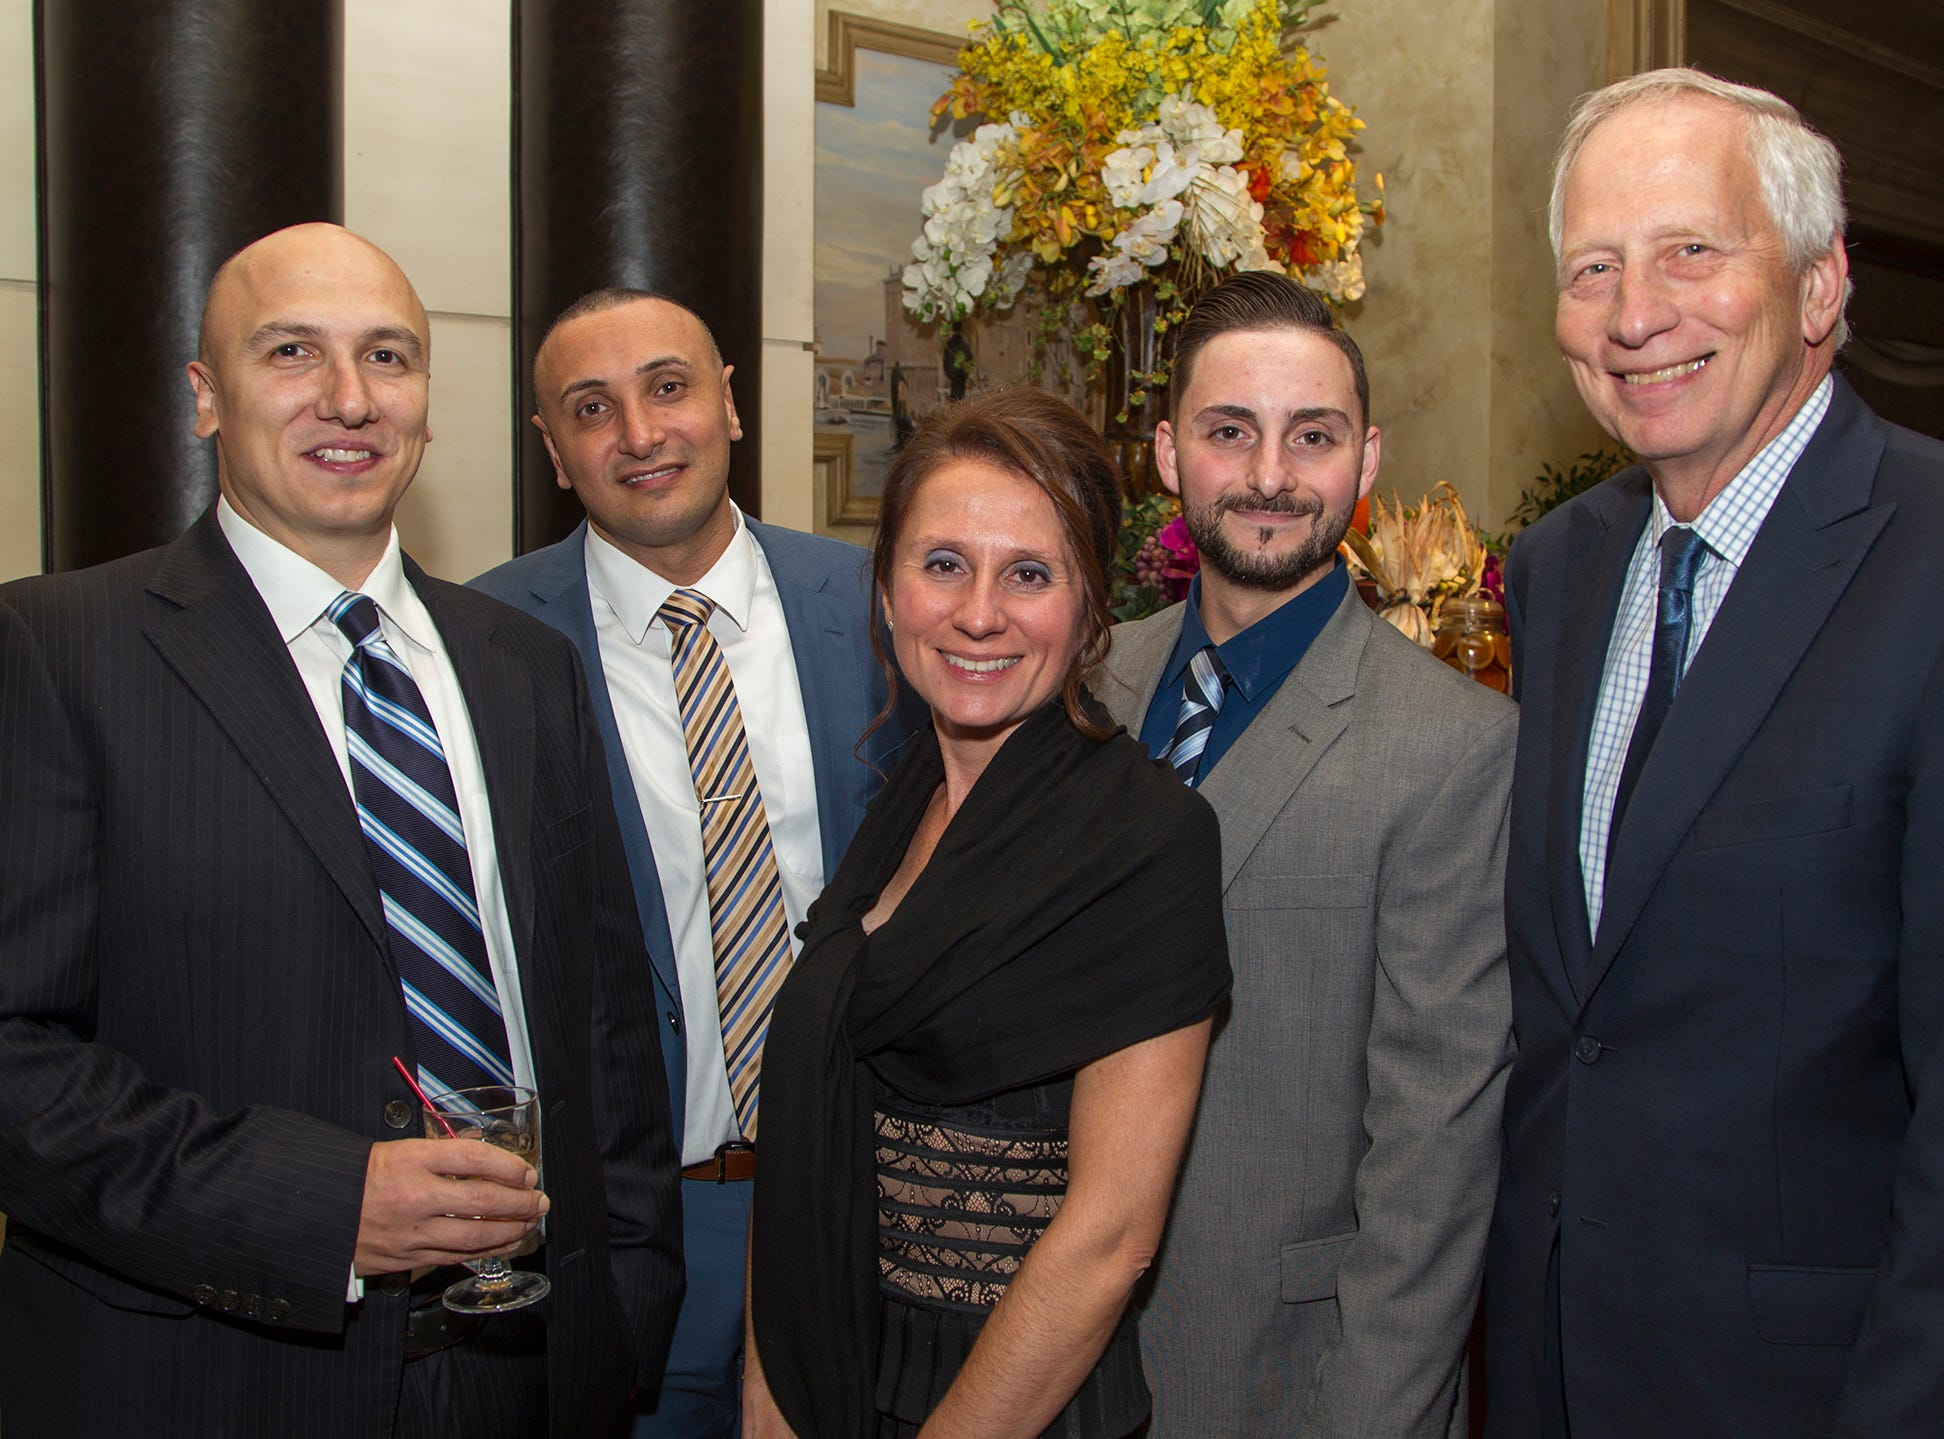 Sal Xheraj, Ed Rizgallah, CHCC Chief Information Office,  Sue Figalora, Chris Rigopoulos, and John Browne FACHE, LNHA, CPHRM, CHCC Vice President, Residential Services. Christian Health Care Center held its ' A Celebration of Excellence' gala at the Venetian in Garfield.  10/17/2018